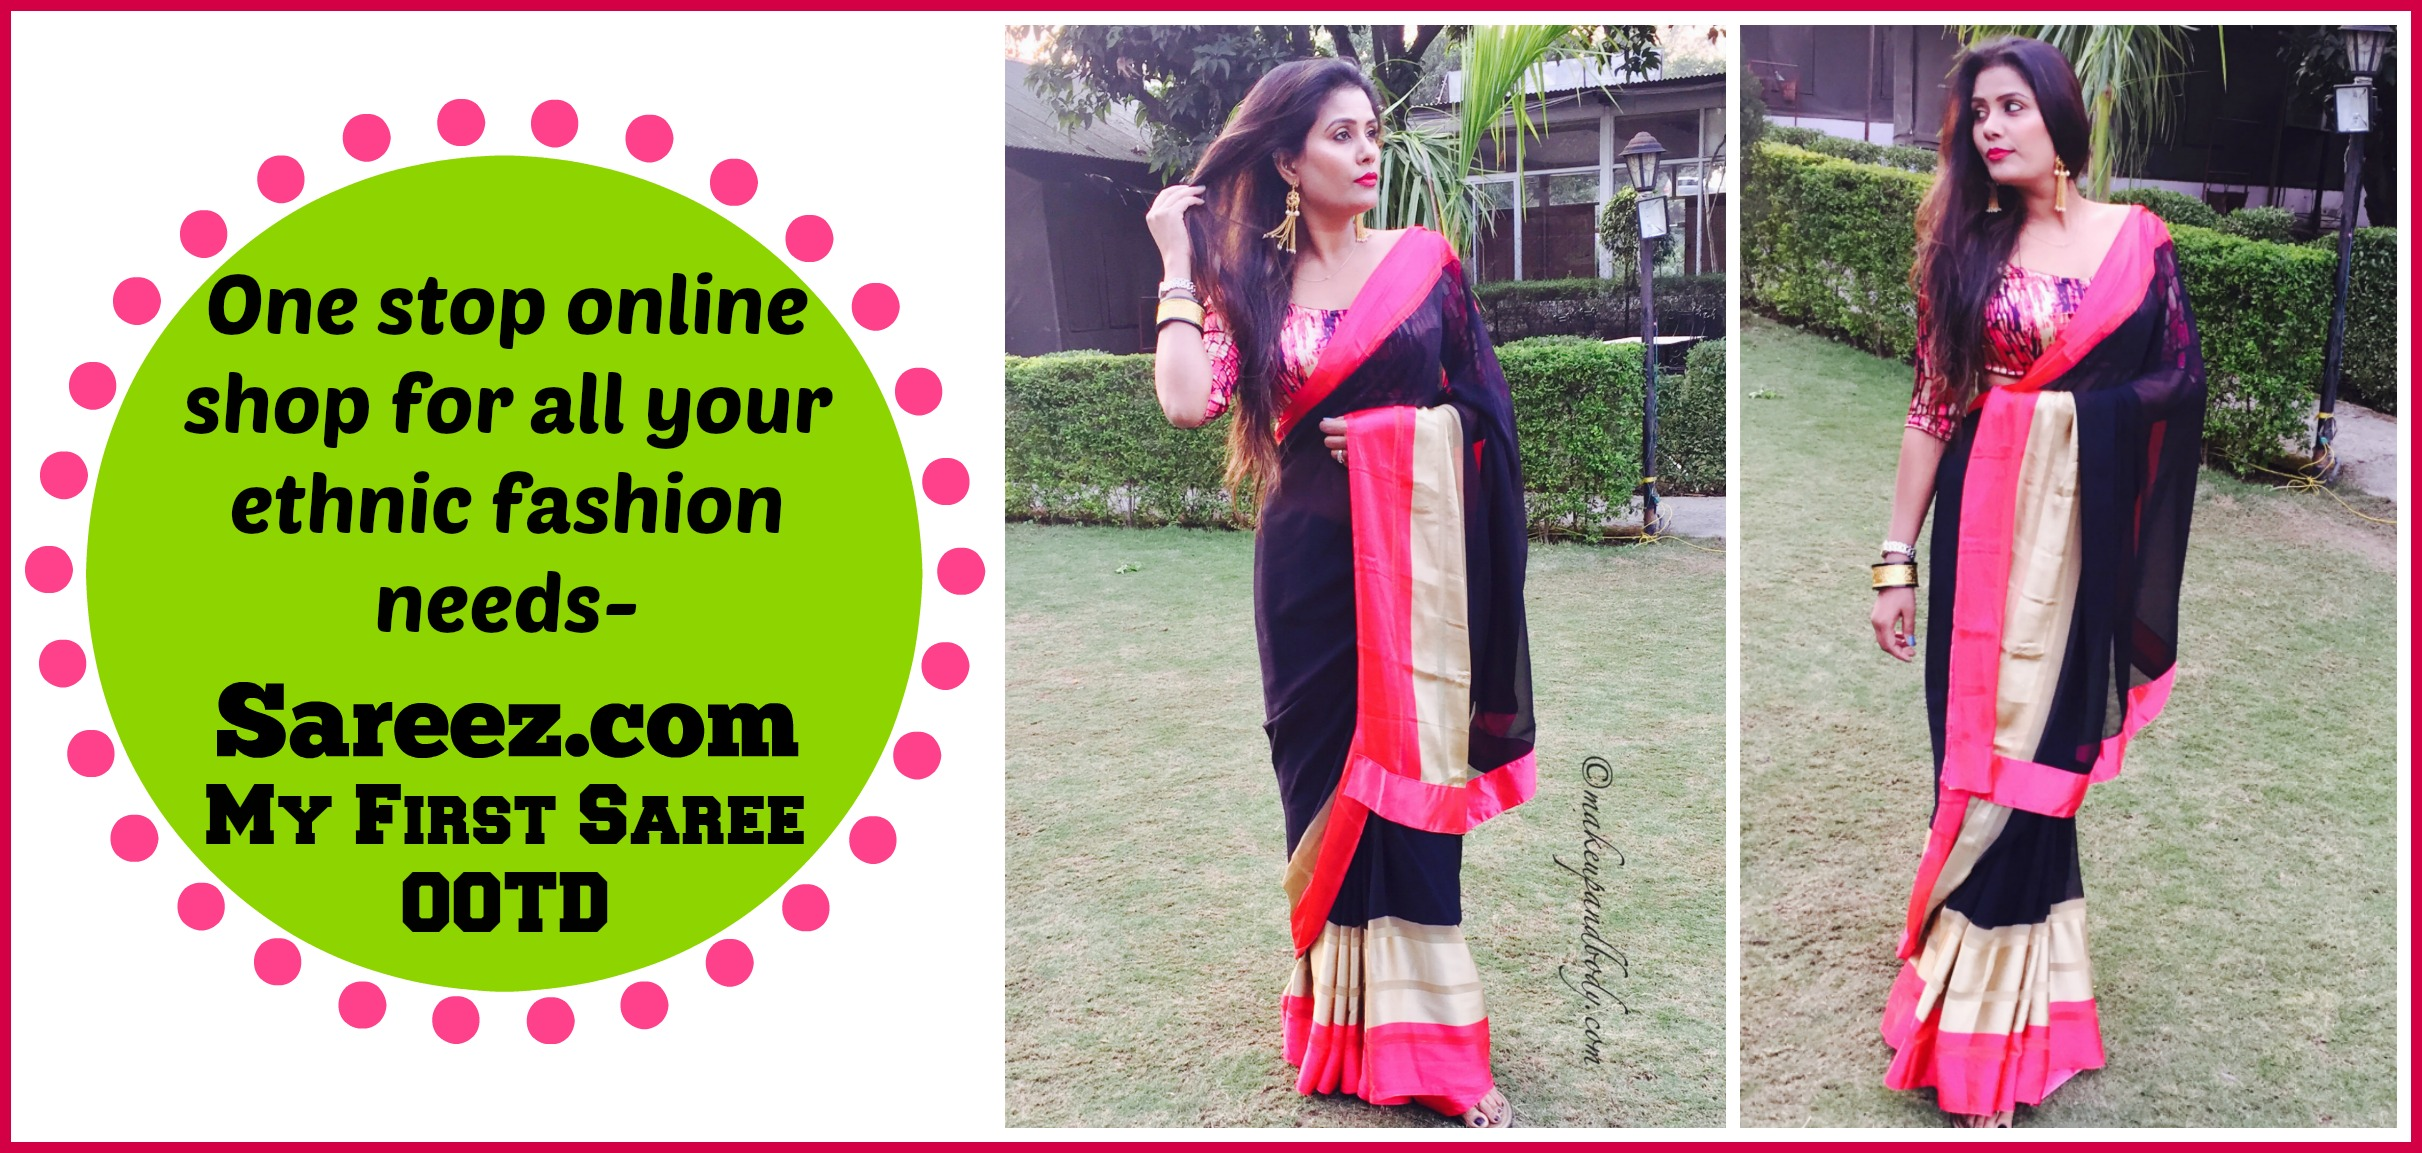 One stop online shop for all your ethnic fashion needs - Sareez.com – My First Saree OOTD